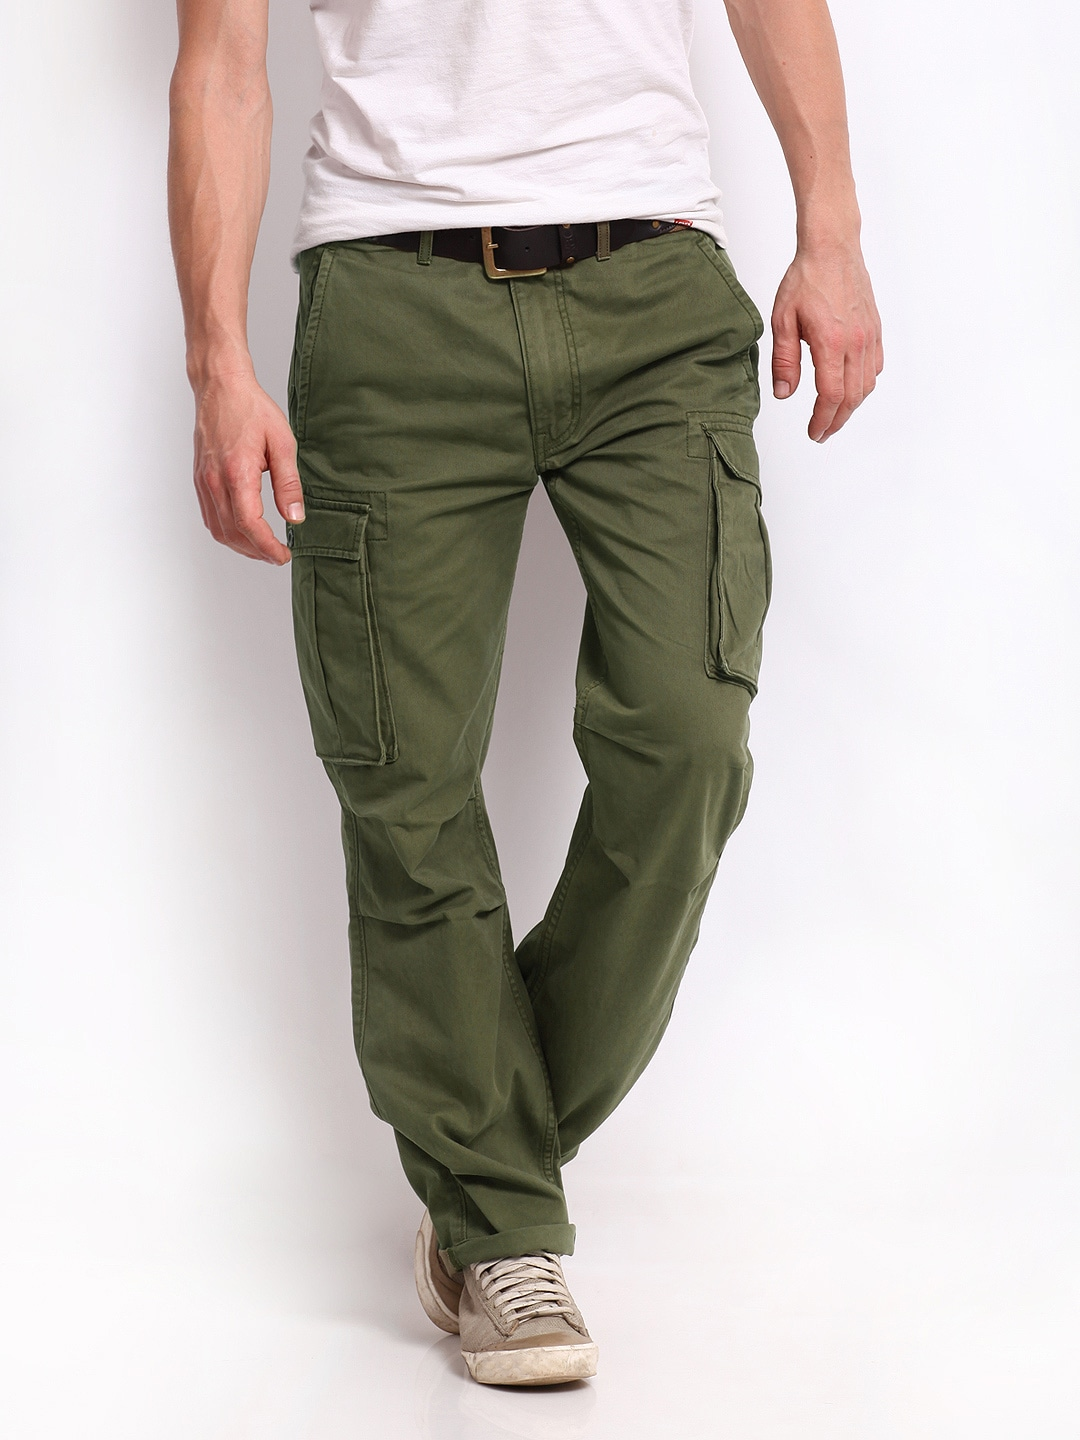 Lastest Relaxed Fitting Straight Leg Pant Sits Slightly Below The Waist And Offers More Room Through The Seat And Thigh Garment Washed For A Softer Fabric And More Comfortable Feel Relaxed Fitting Straight Leg Pant Sits Slightly Below The Waist And